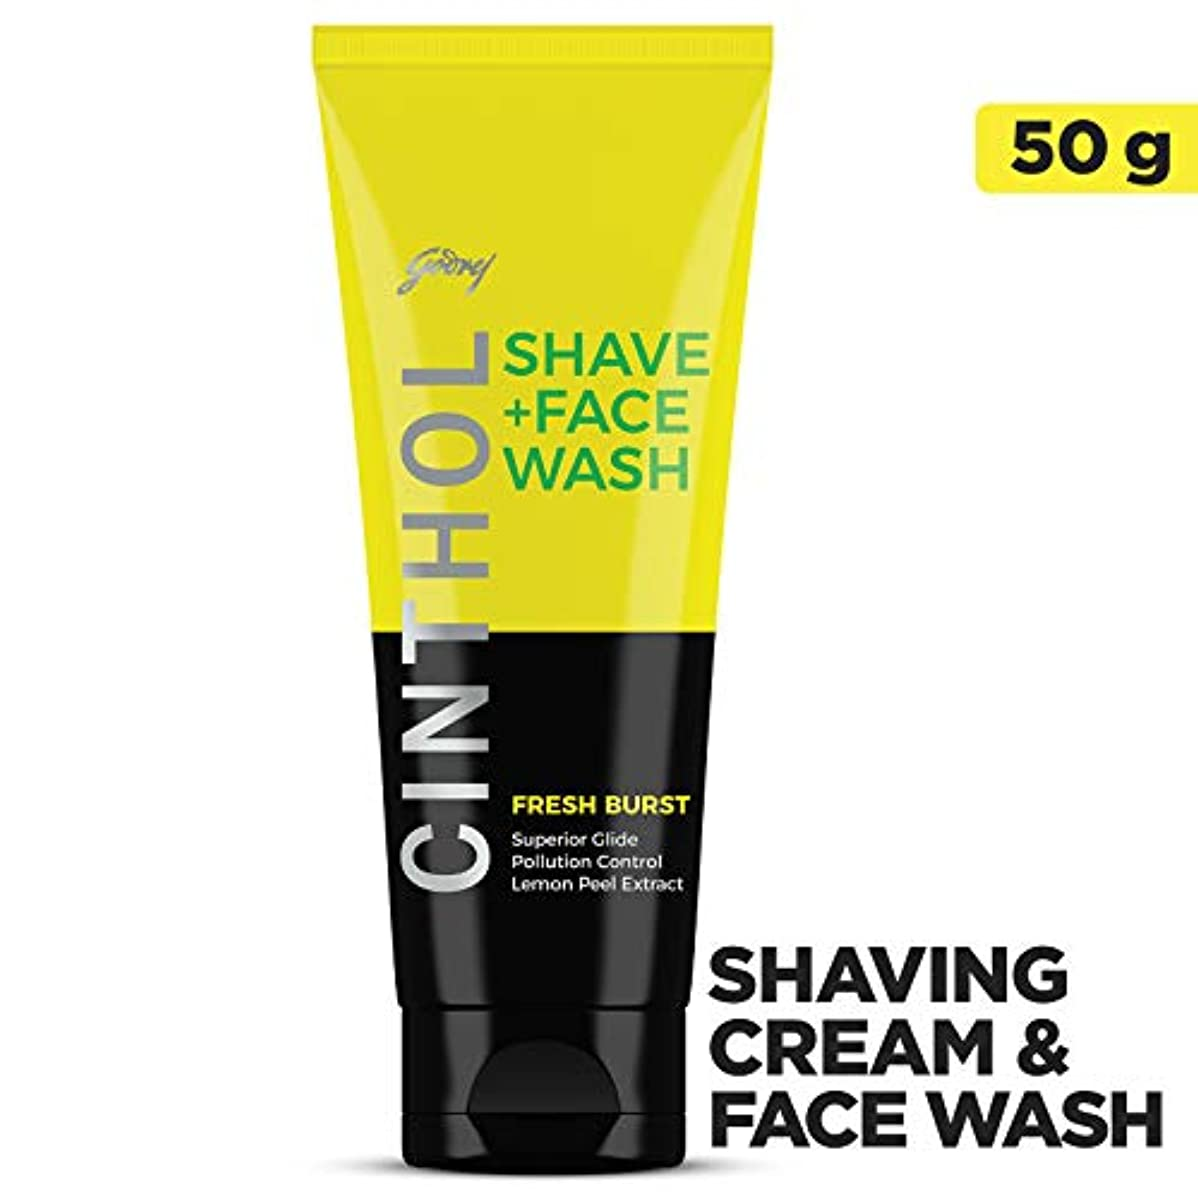 ピービッシュ化合物受付Cinthol Fresh Burst Shaving + Face Wash, 50g